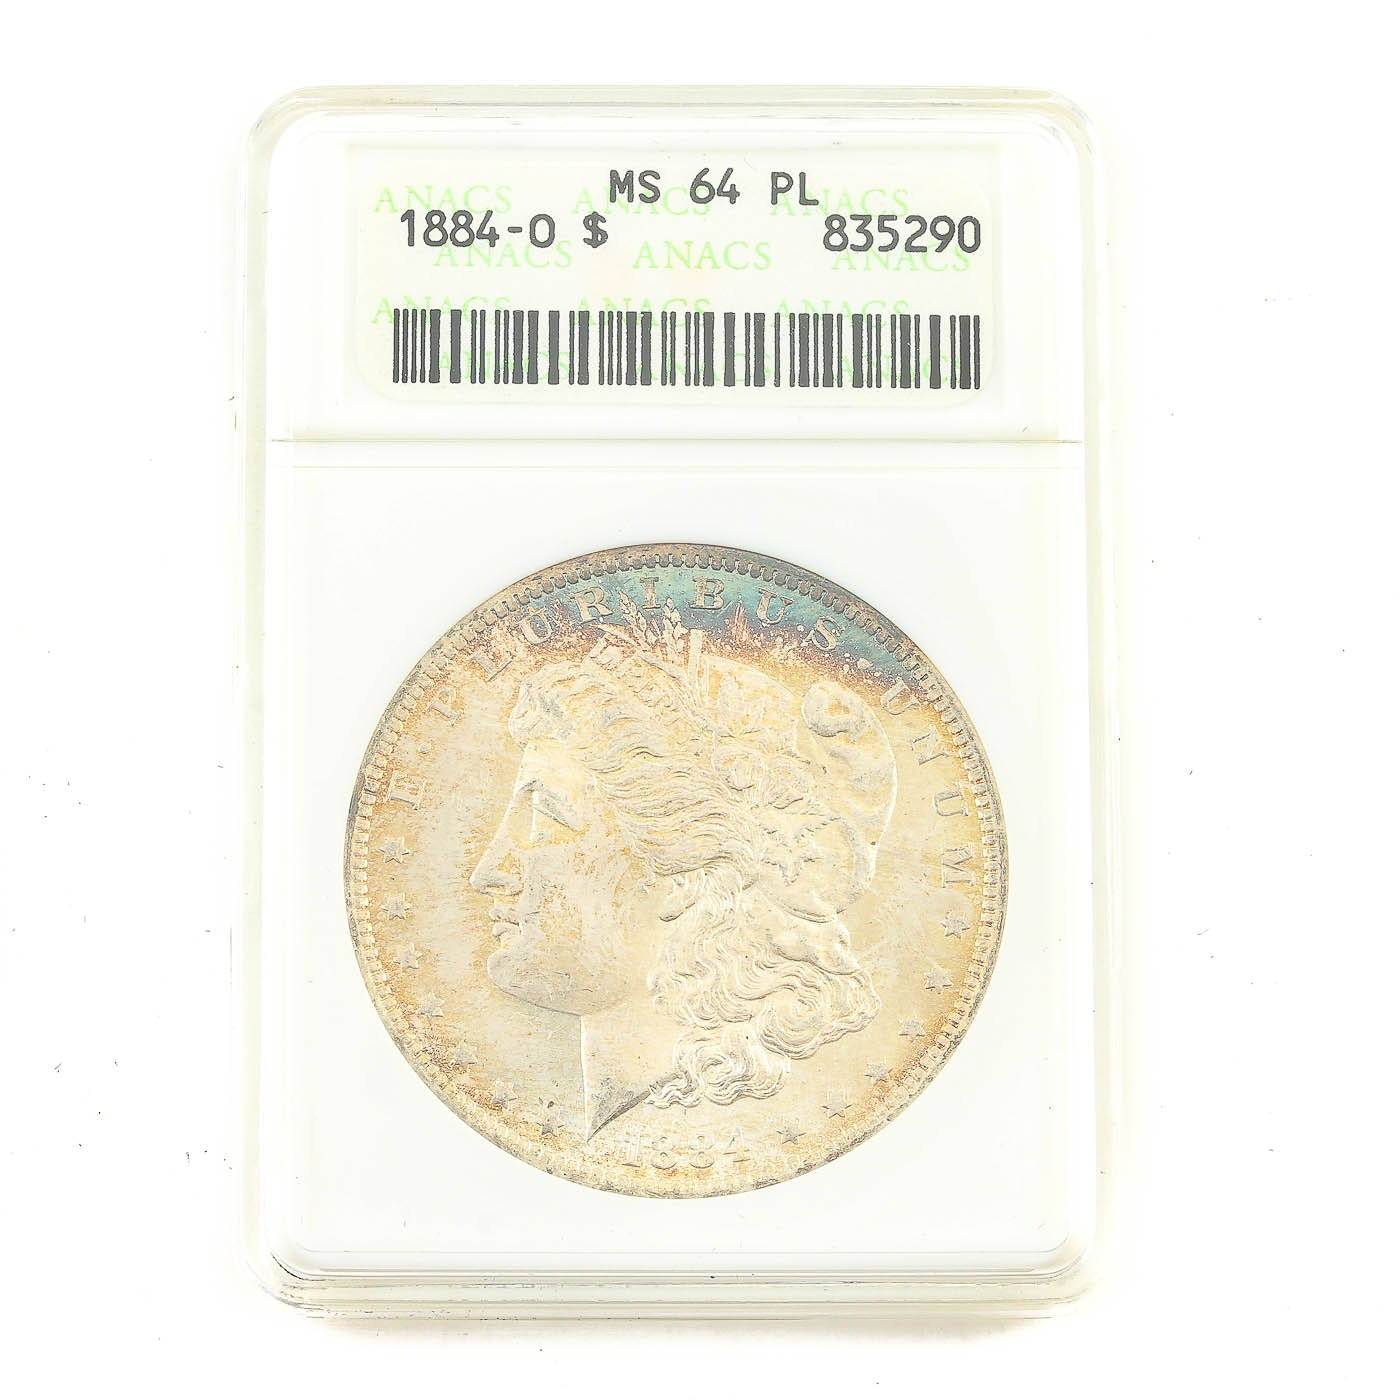 ANACS graded MS64 PL 1884-O Morgan Silver Dollar